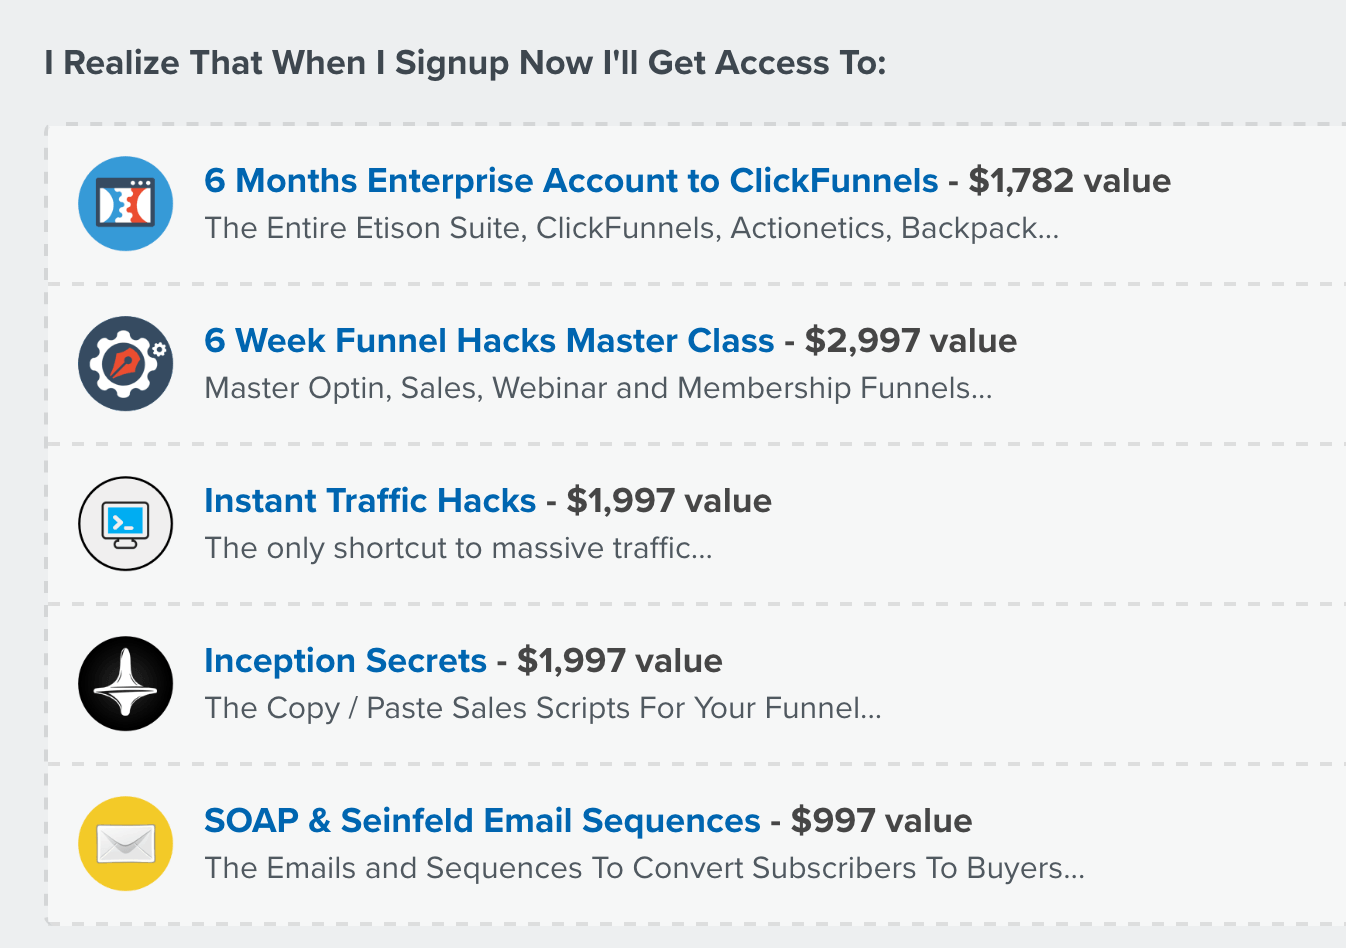 Does Clickfunnels Host Webinars